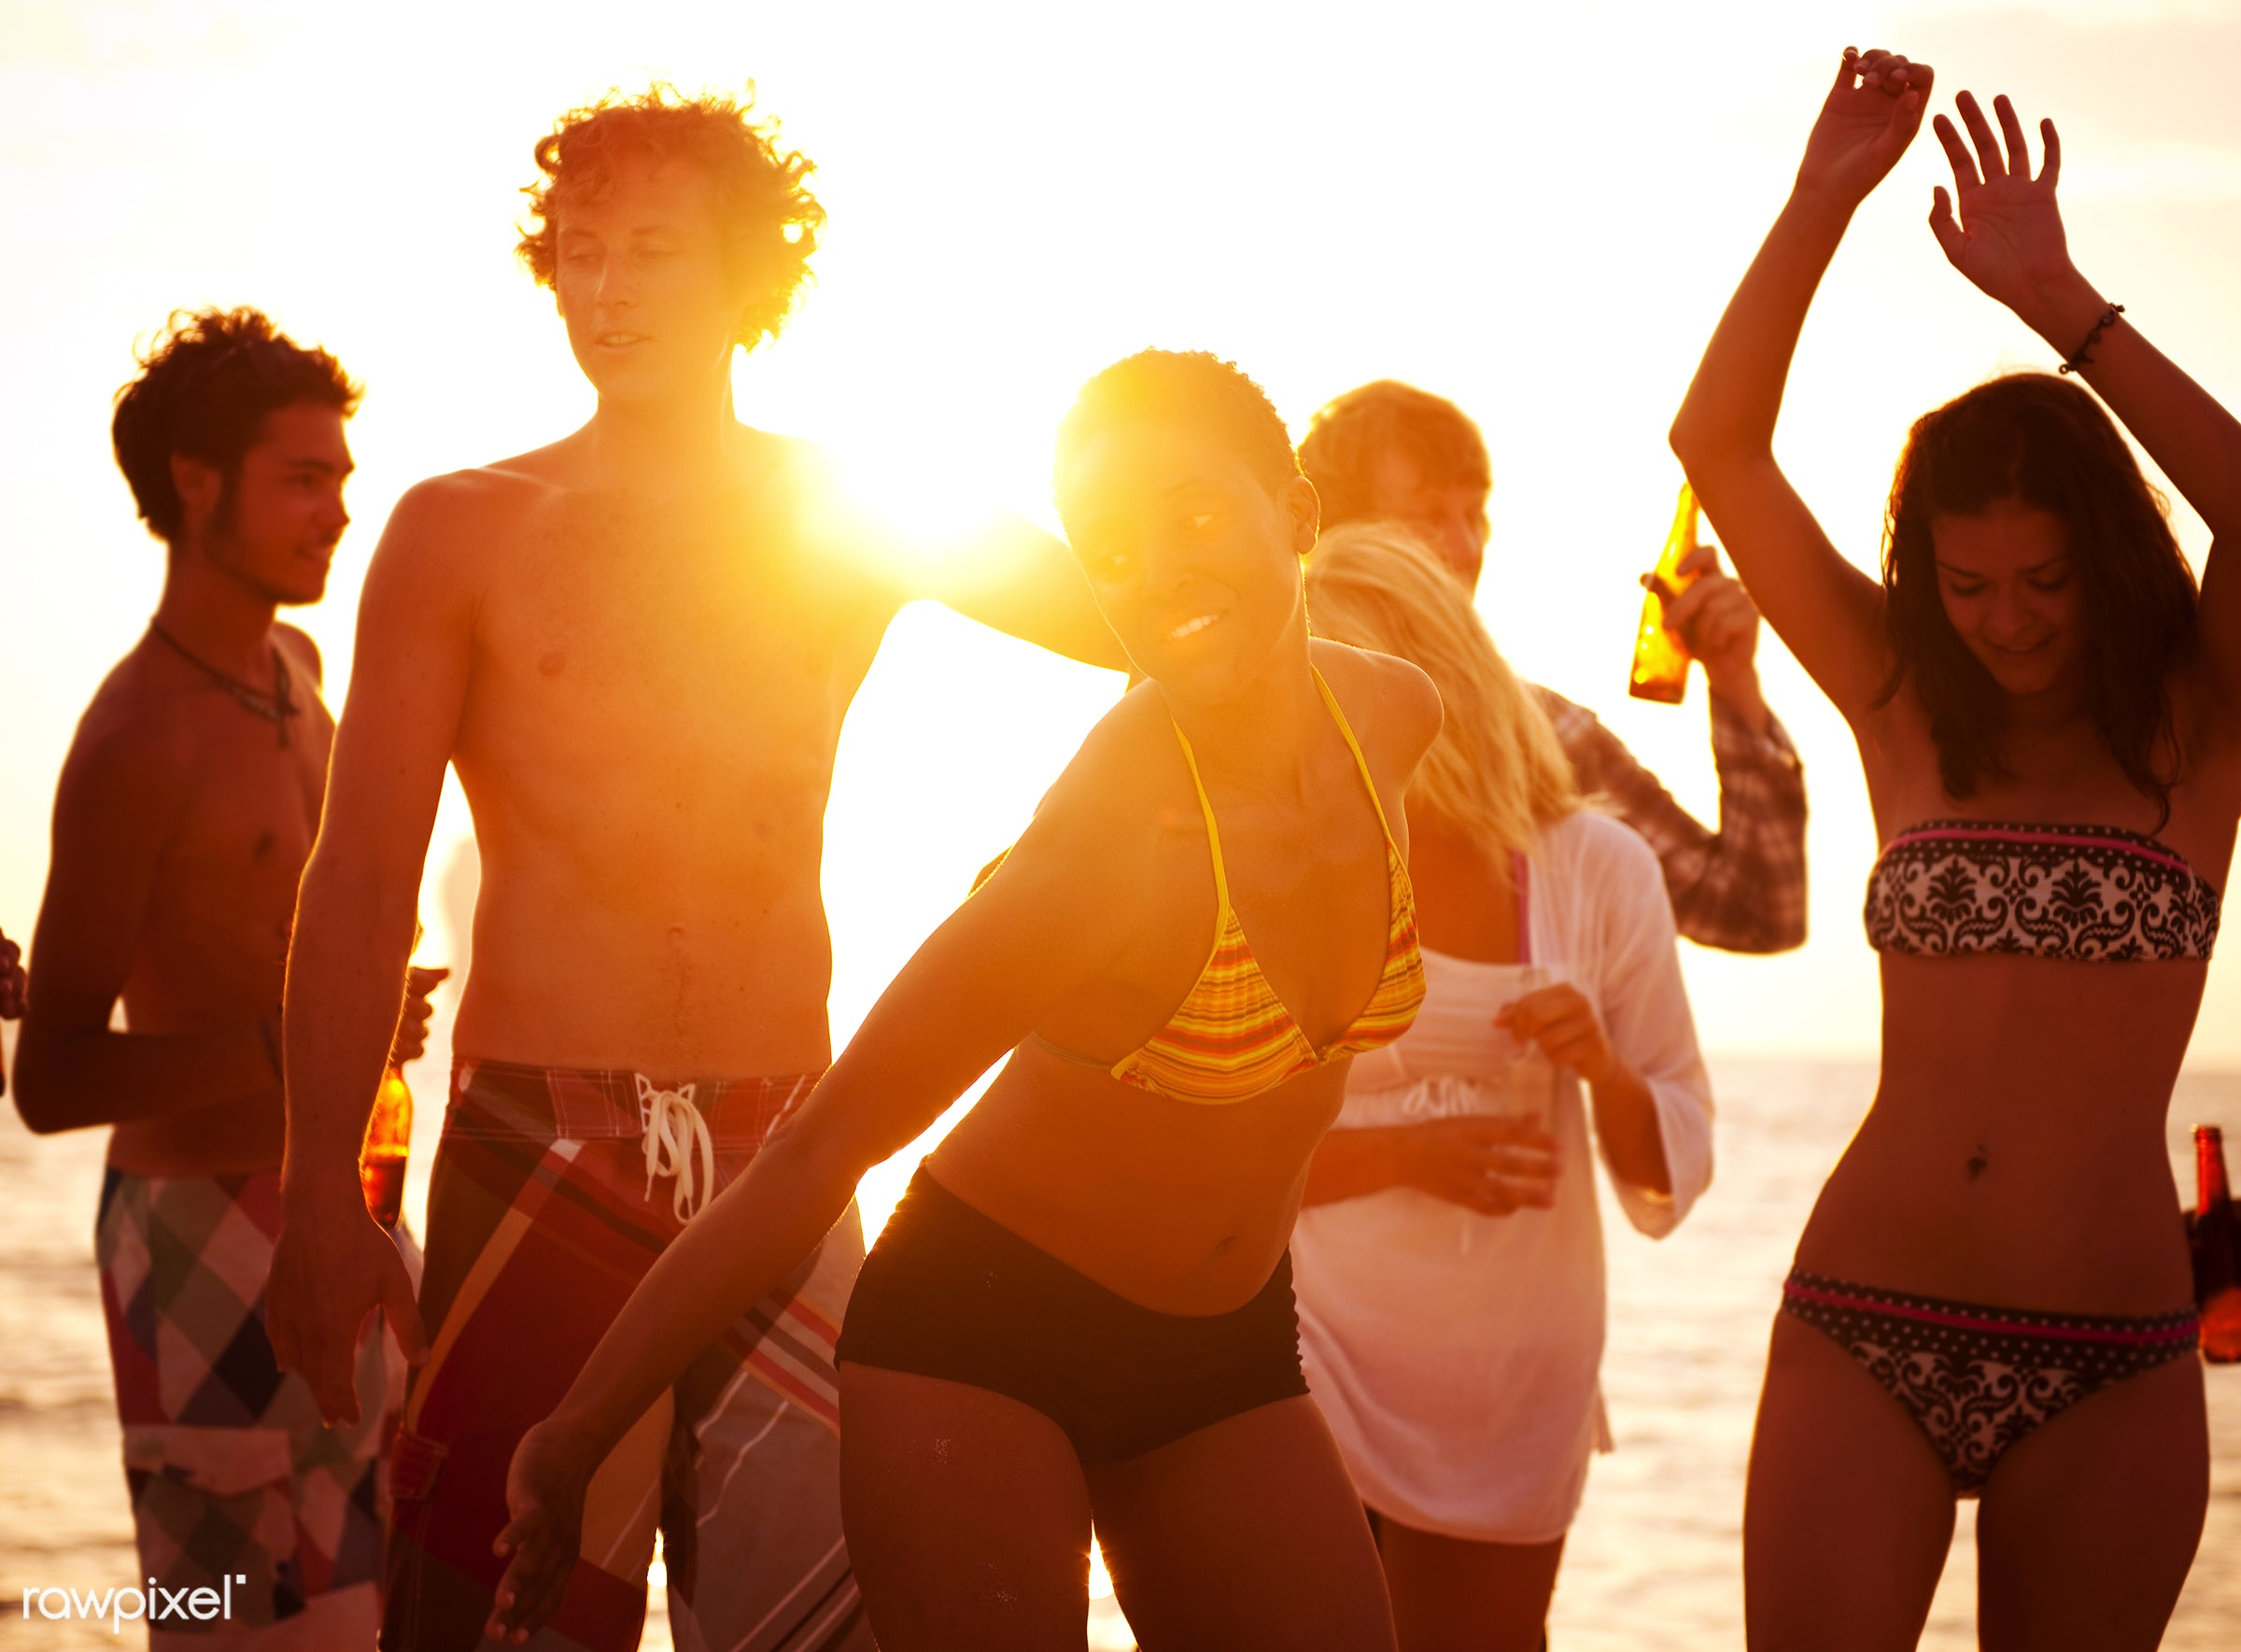 freedom, leisure activity, drinking, silhouette, travel, beach, bikini, party, people, young adult, teenager, friendship,...